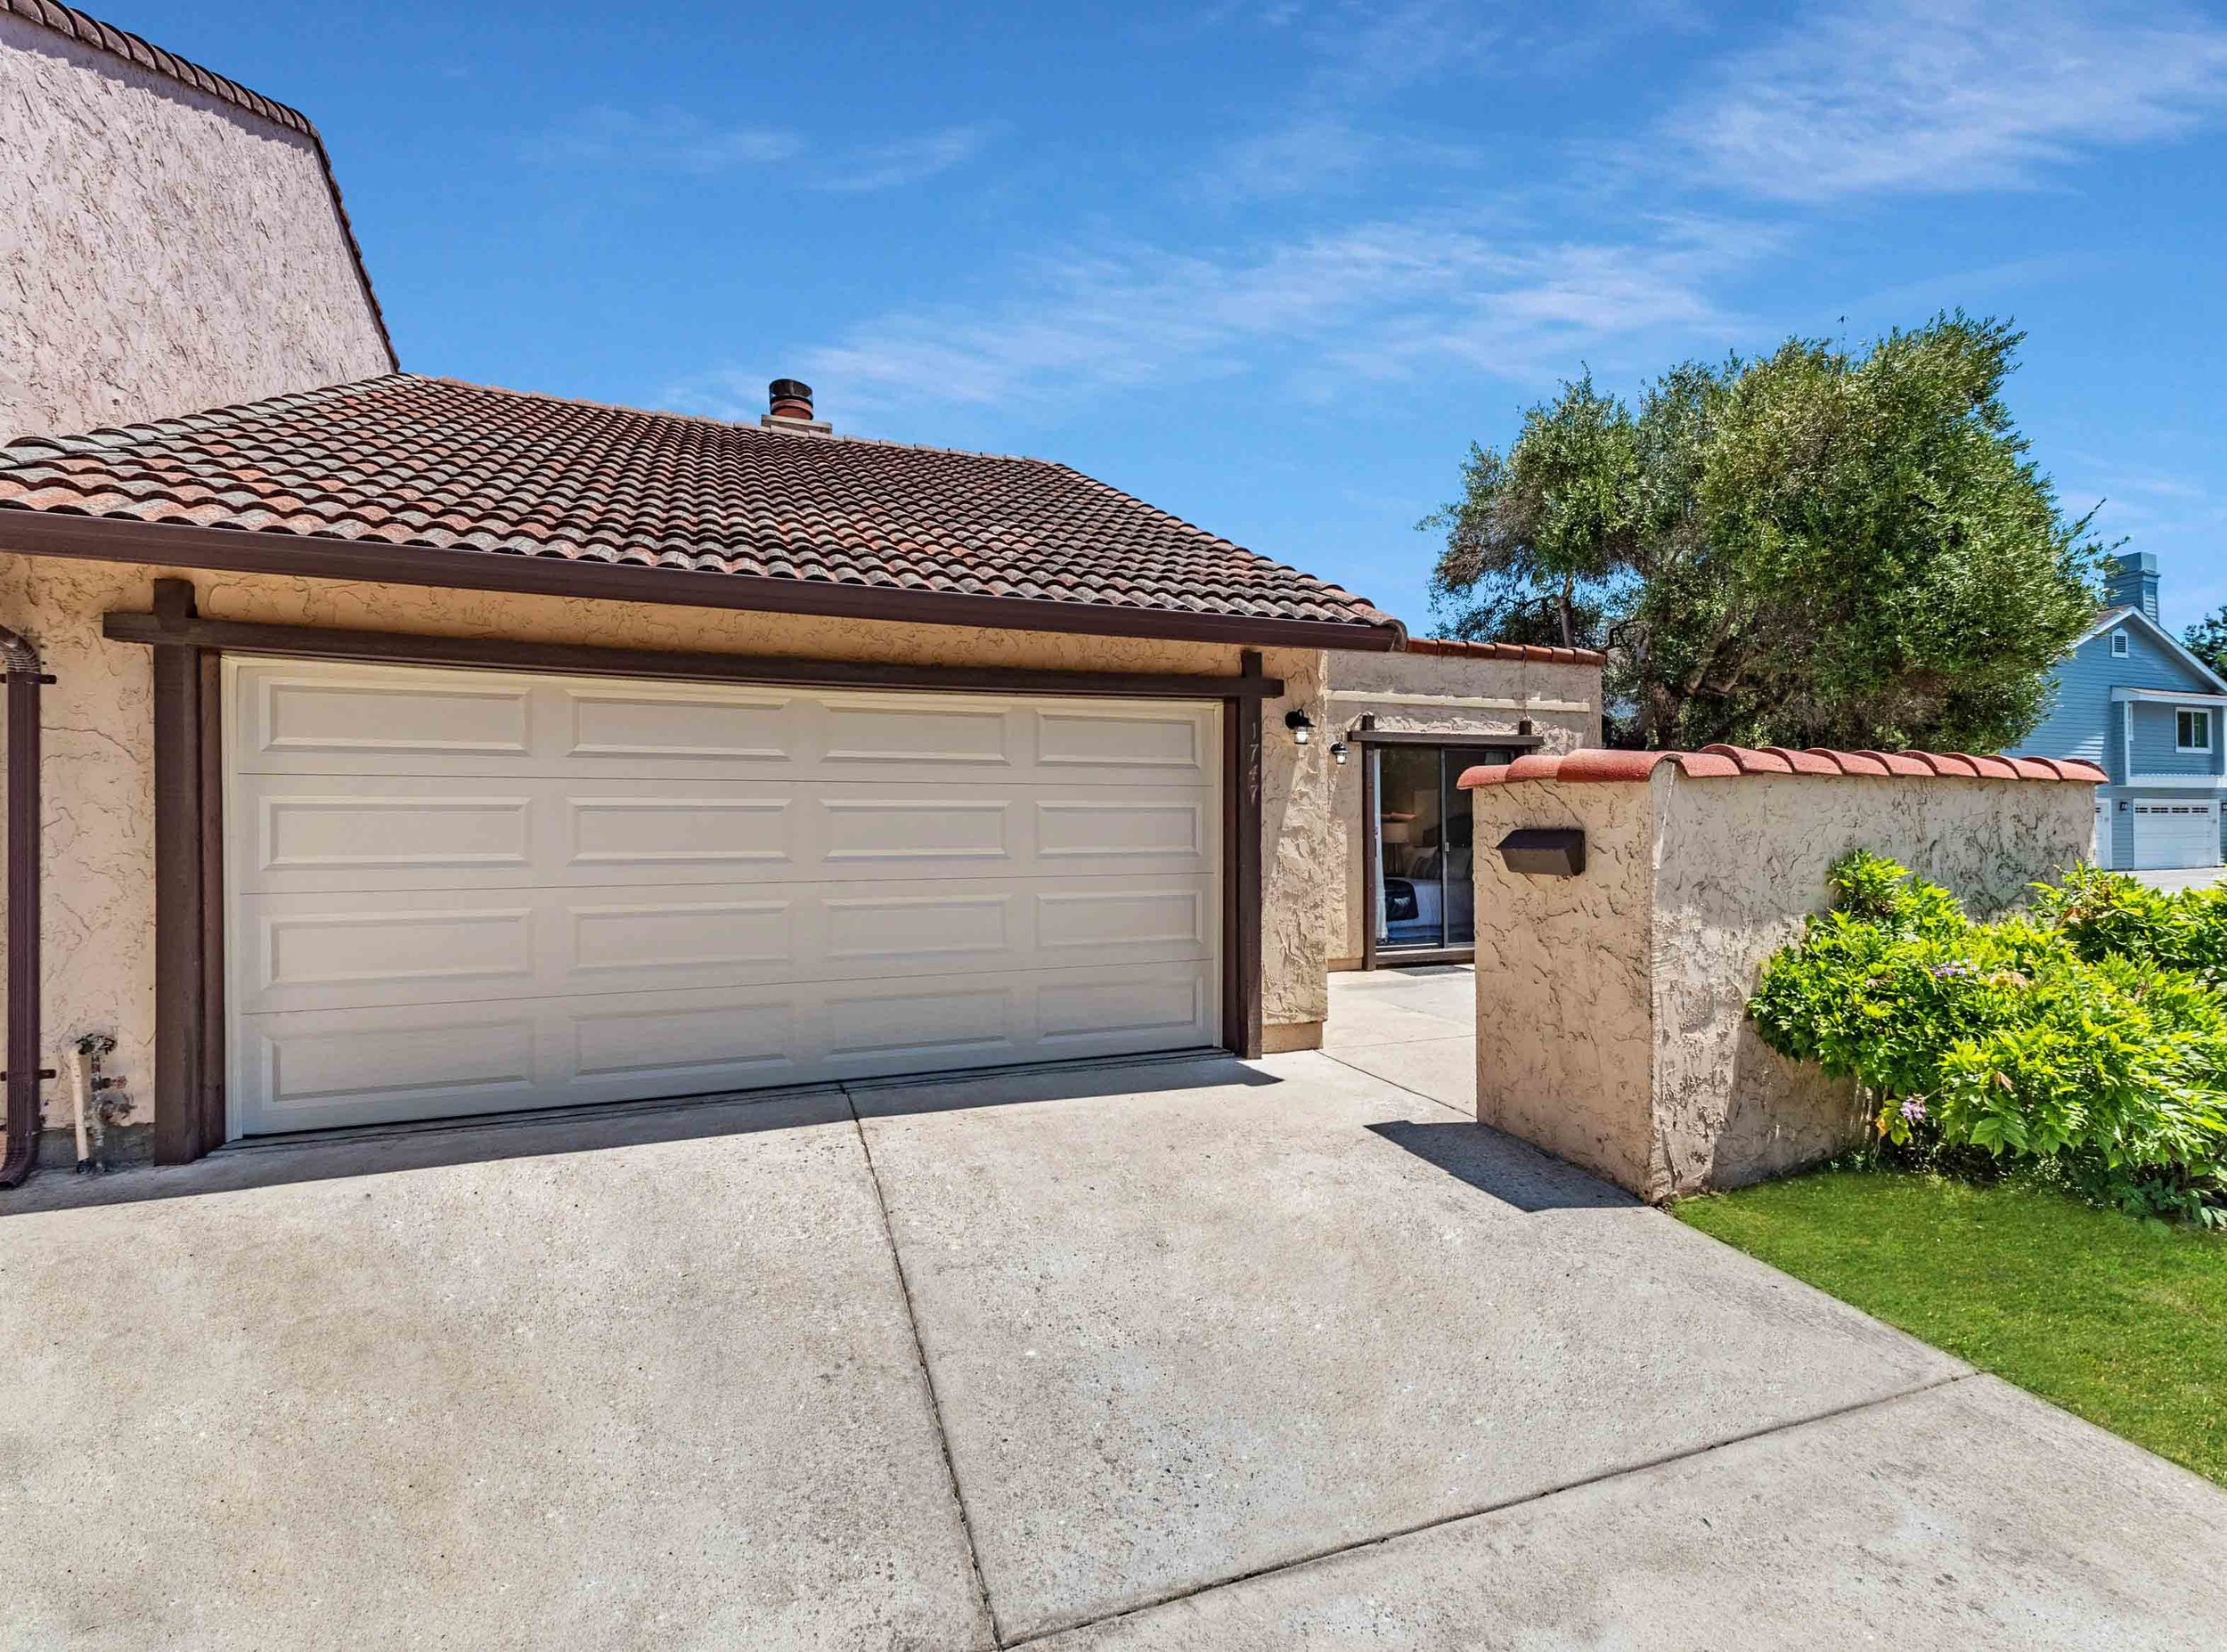 1747 Escalona Drive, Santa Cruz • $845,000 - 3 bedrooms, 1.5 bathrooms • 1,230 Sq. Ft.